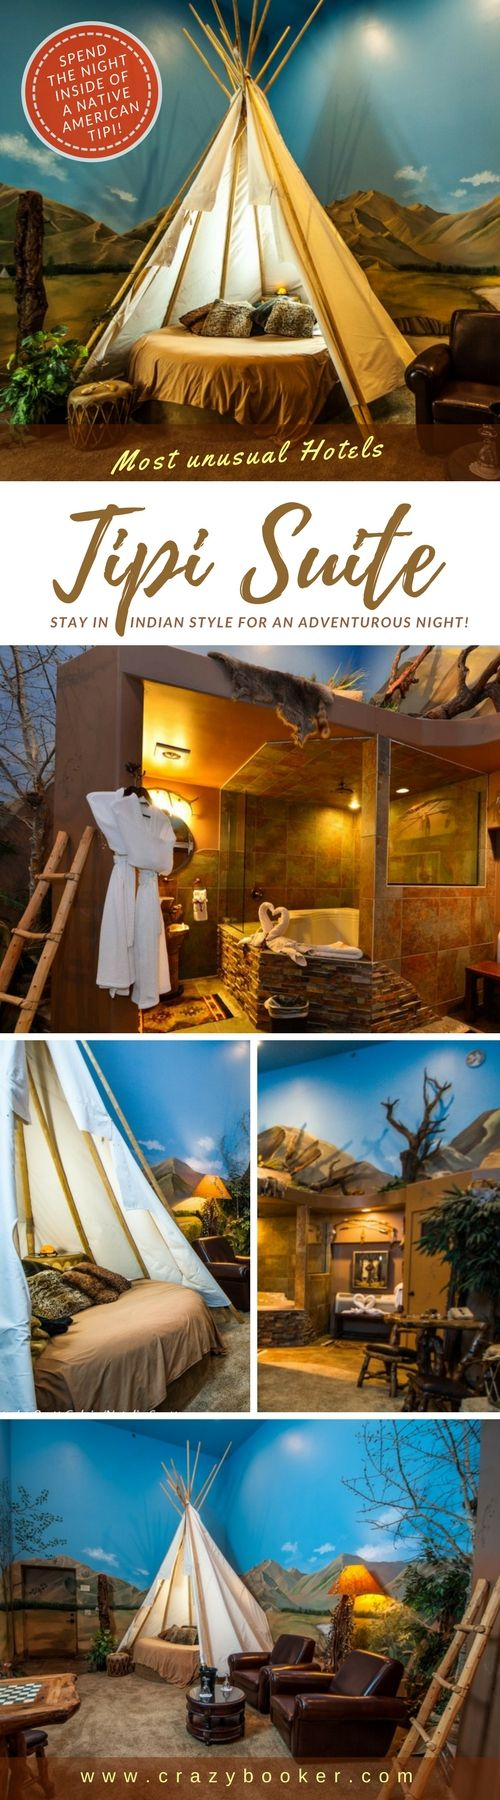 Tipi Suite - #nativeamerican  themed #hotel room | Close your eyes and hear the sound of drums and ancient Indian songs as you enter this Indian-style hotel suite. Look closely, in the distance you may see the buffalo. Snuggle under the furs and skins on the round bed in an Indian tent and enjoy the romantic glow of the artificial fireplace. This unique lodging not only embodies the harmony between nature and native Americans, but also offers modern comfort like a large jetted tub…